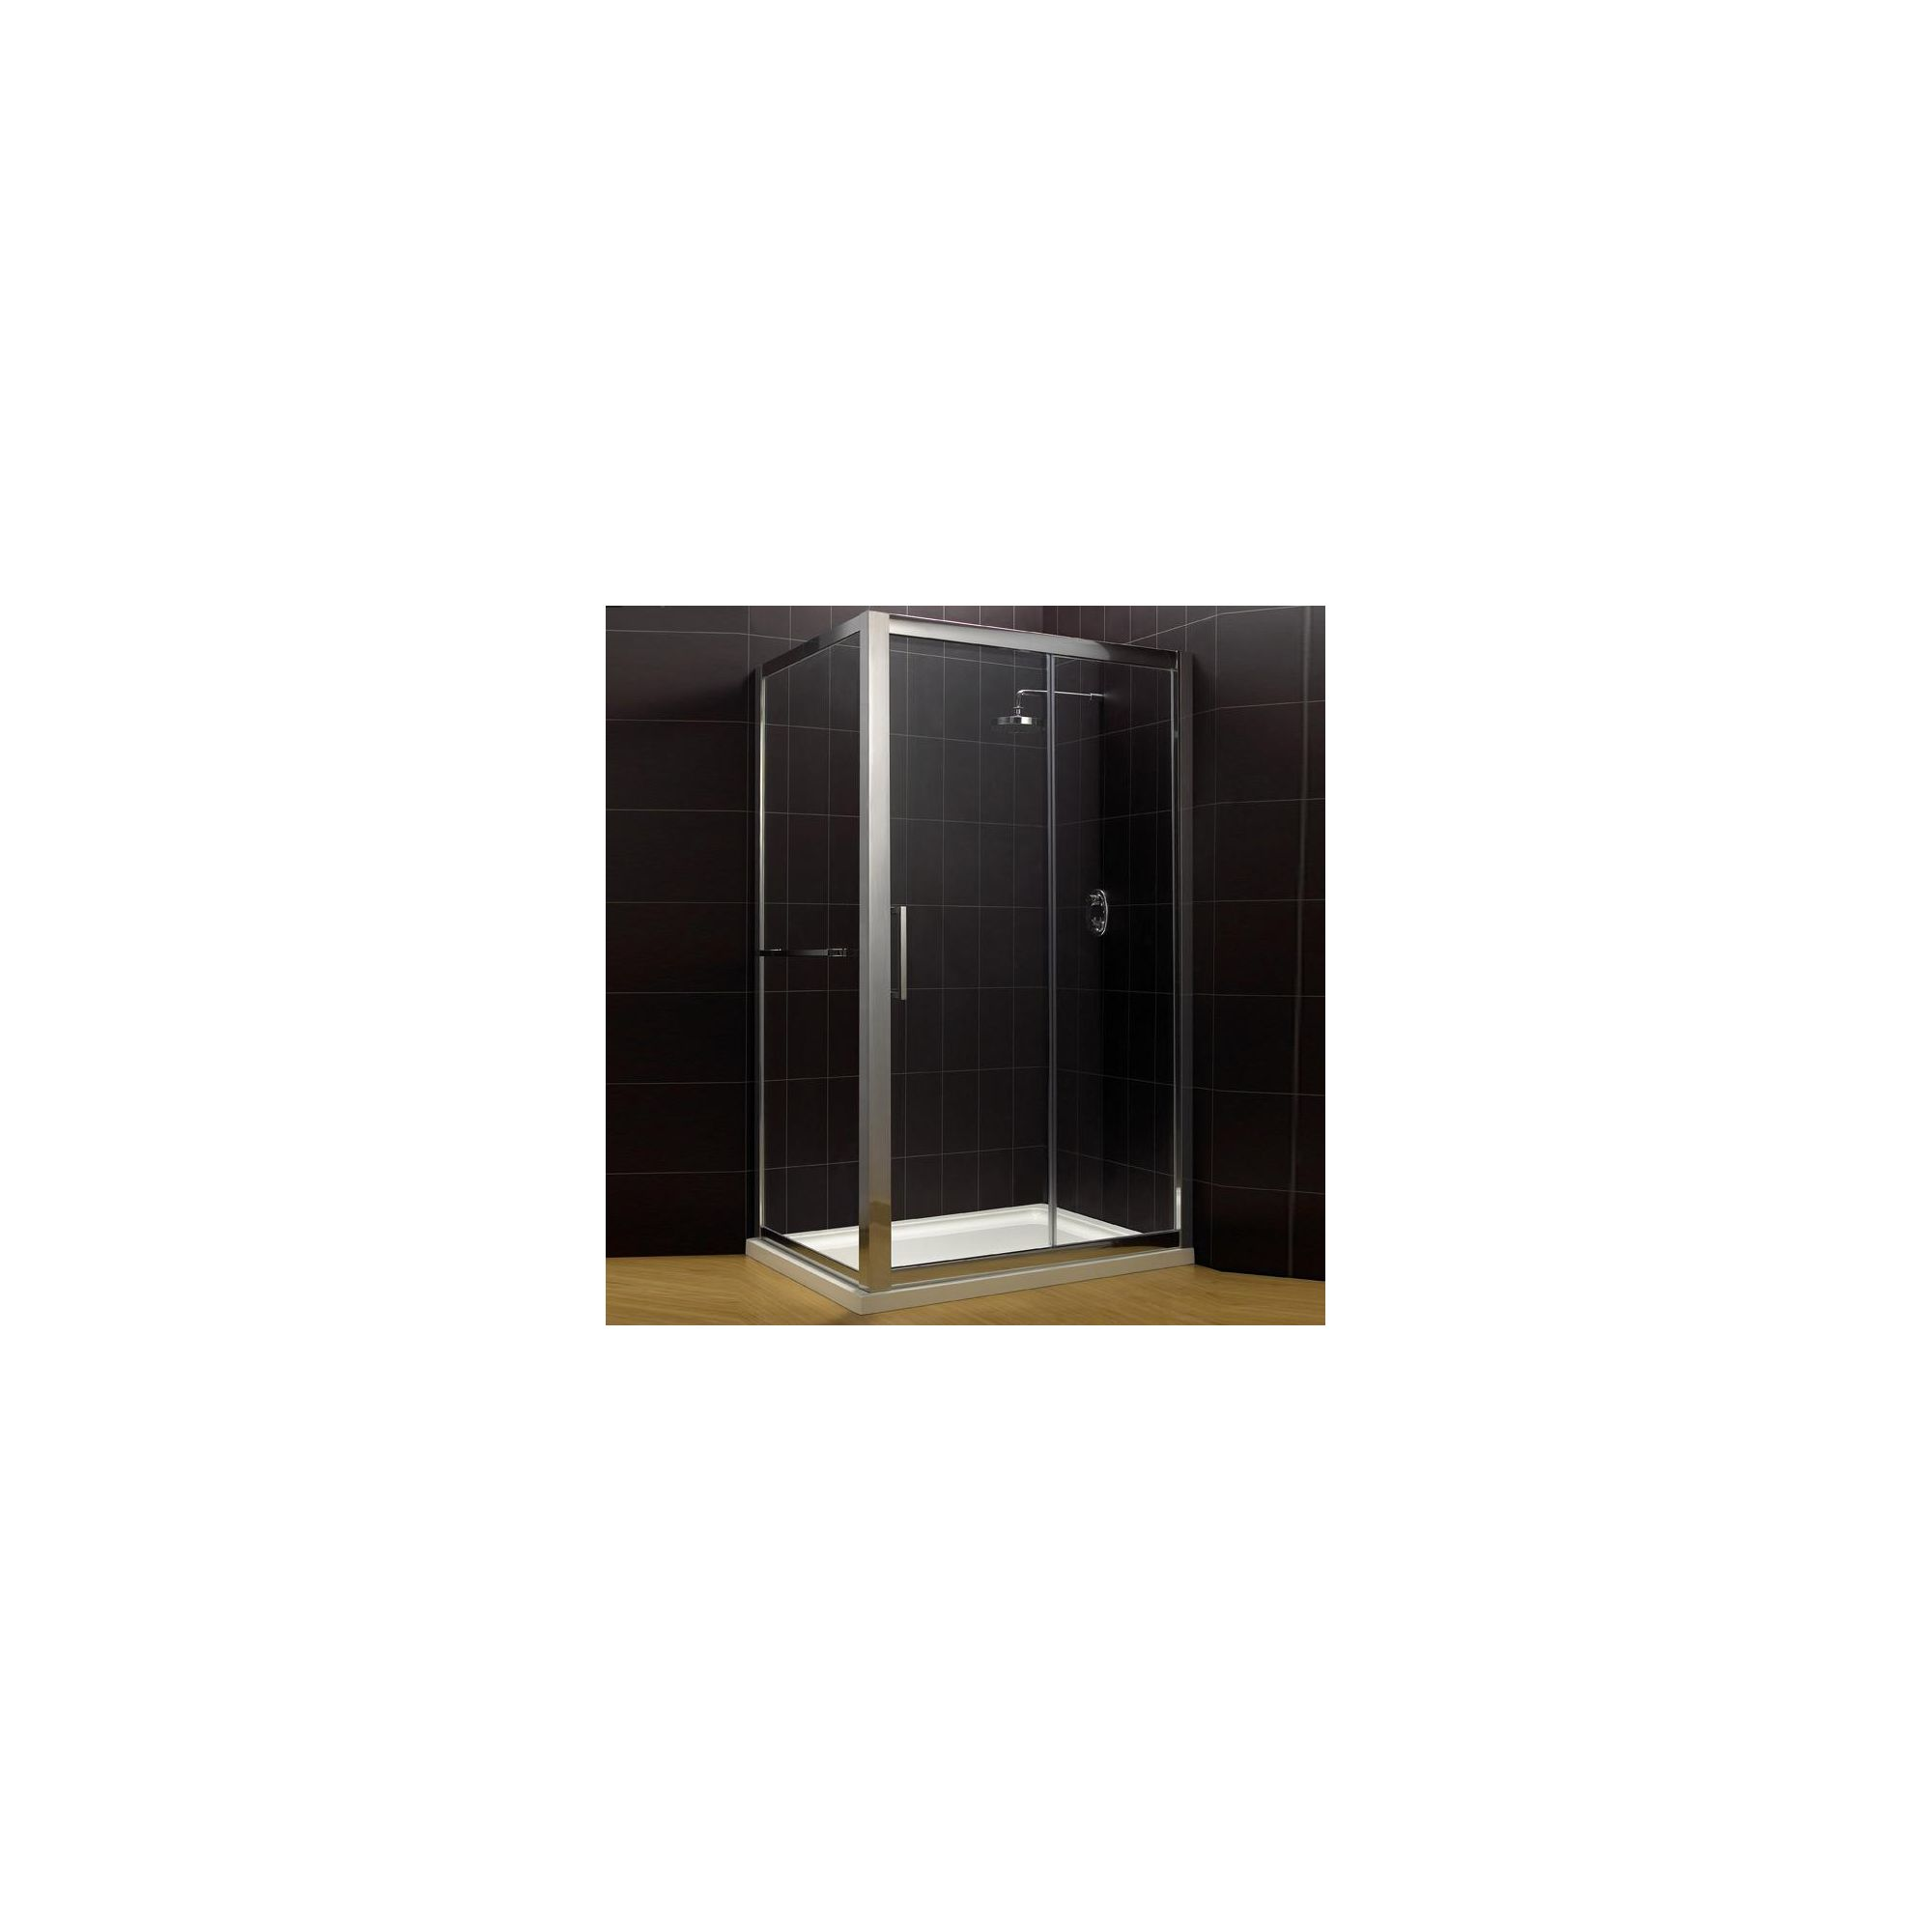 Duchy Supreme Silver Sliding Door Shower Enclosure, 1200mm x 800mm, Standard Tray, 8mm Glass at Tesco Direct